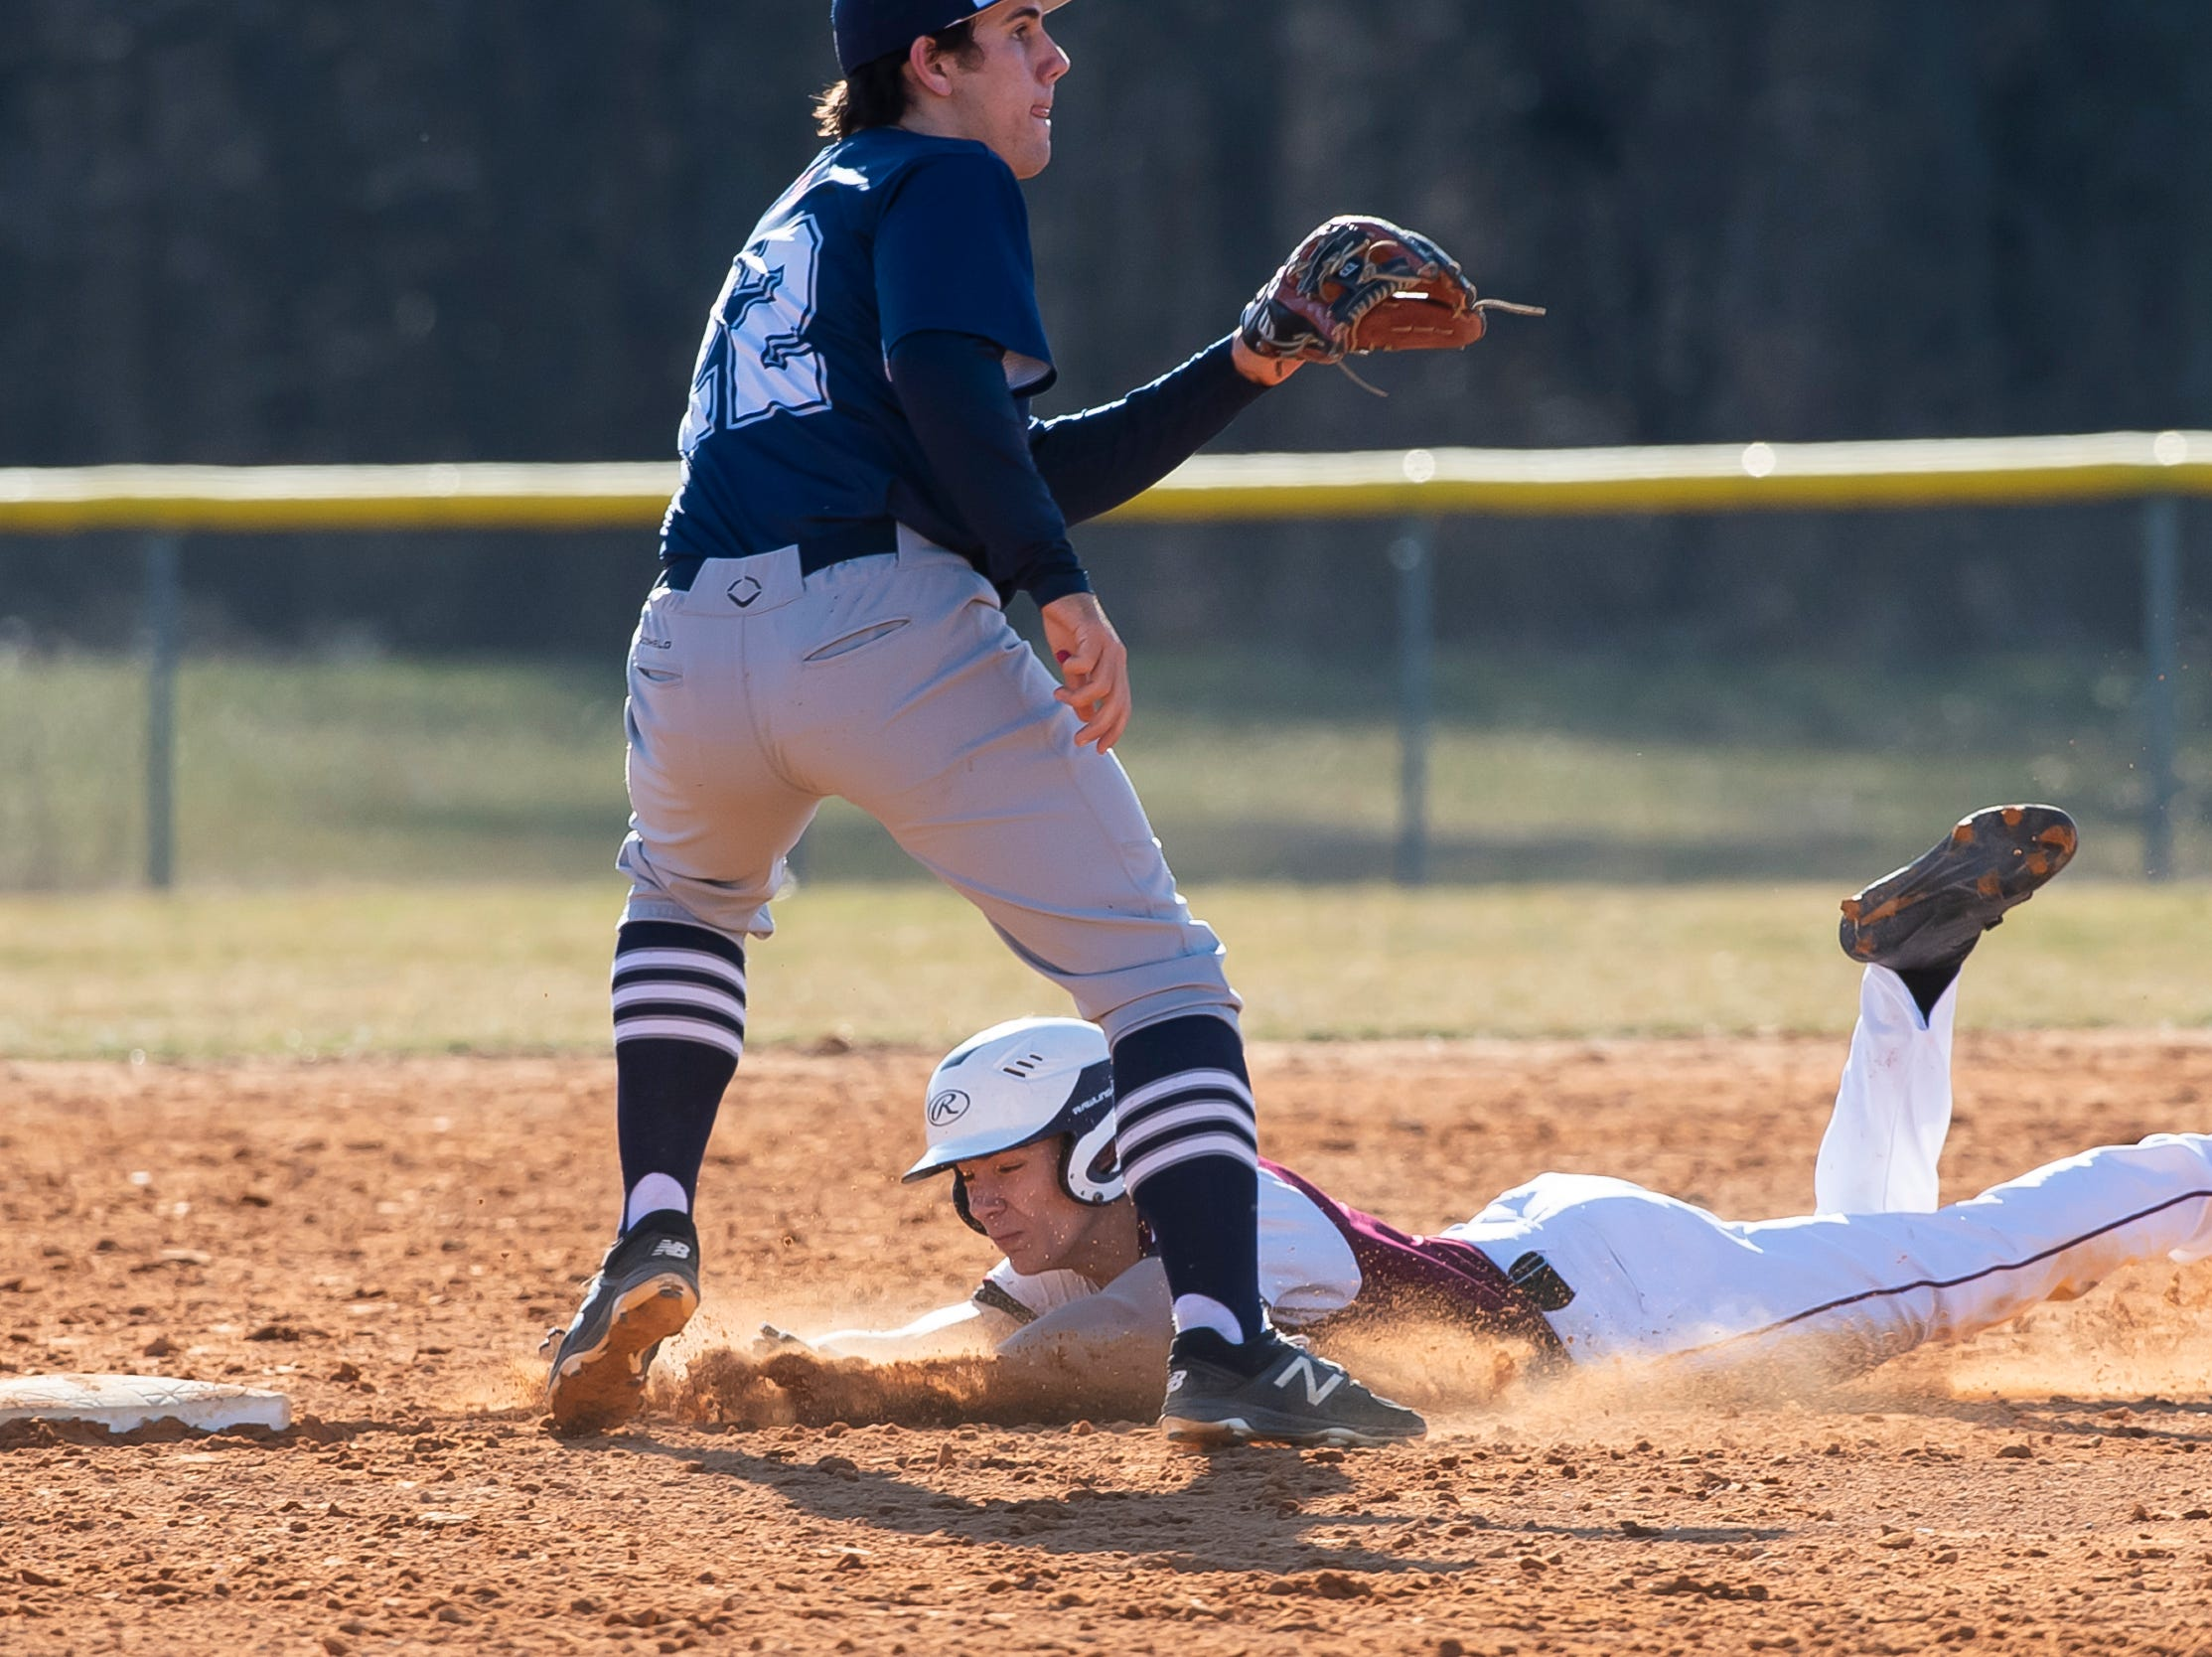 Gettysburg's Dillon Gebler safely slides head-first into second base during a YAIAA baseball game against Dallastown on Wednesday, March 27, 2019.